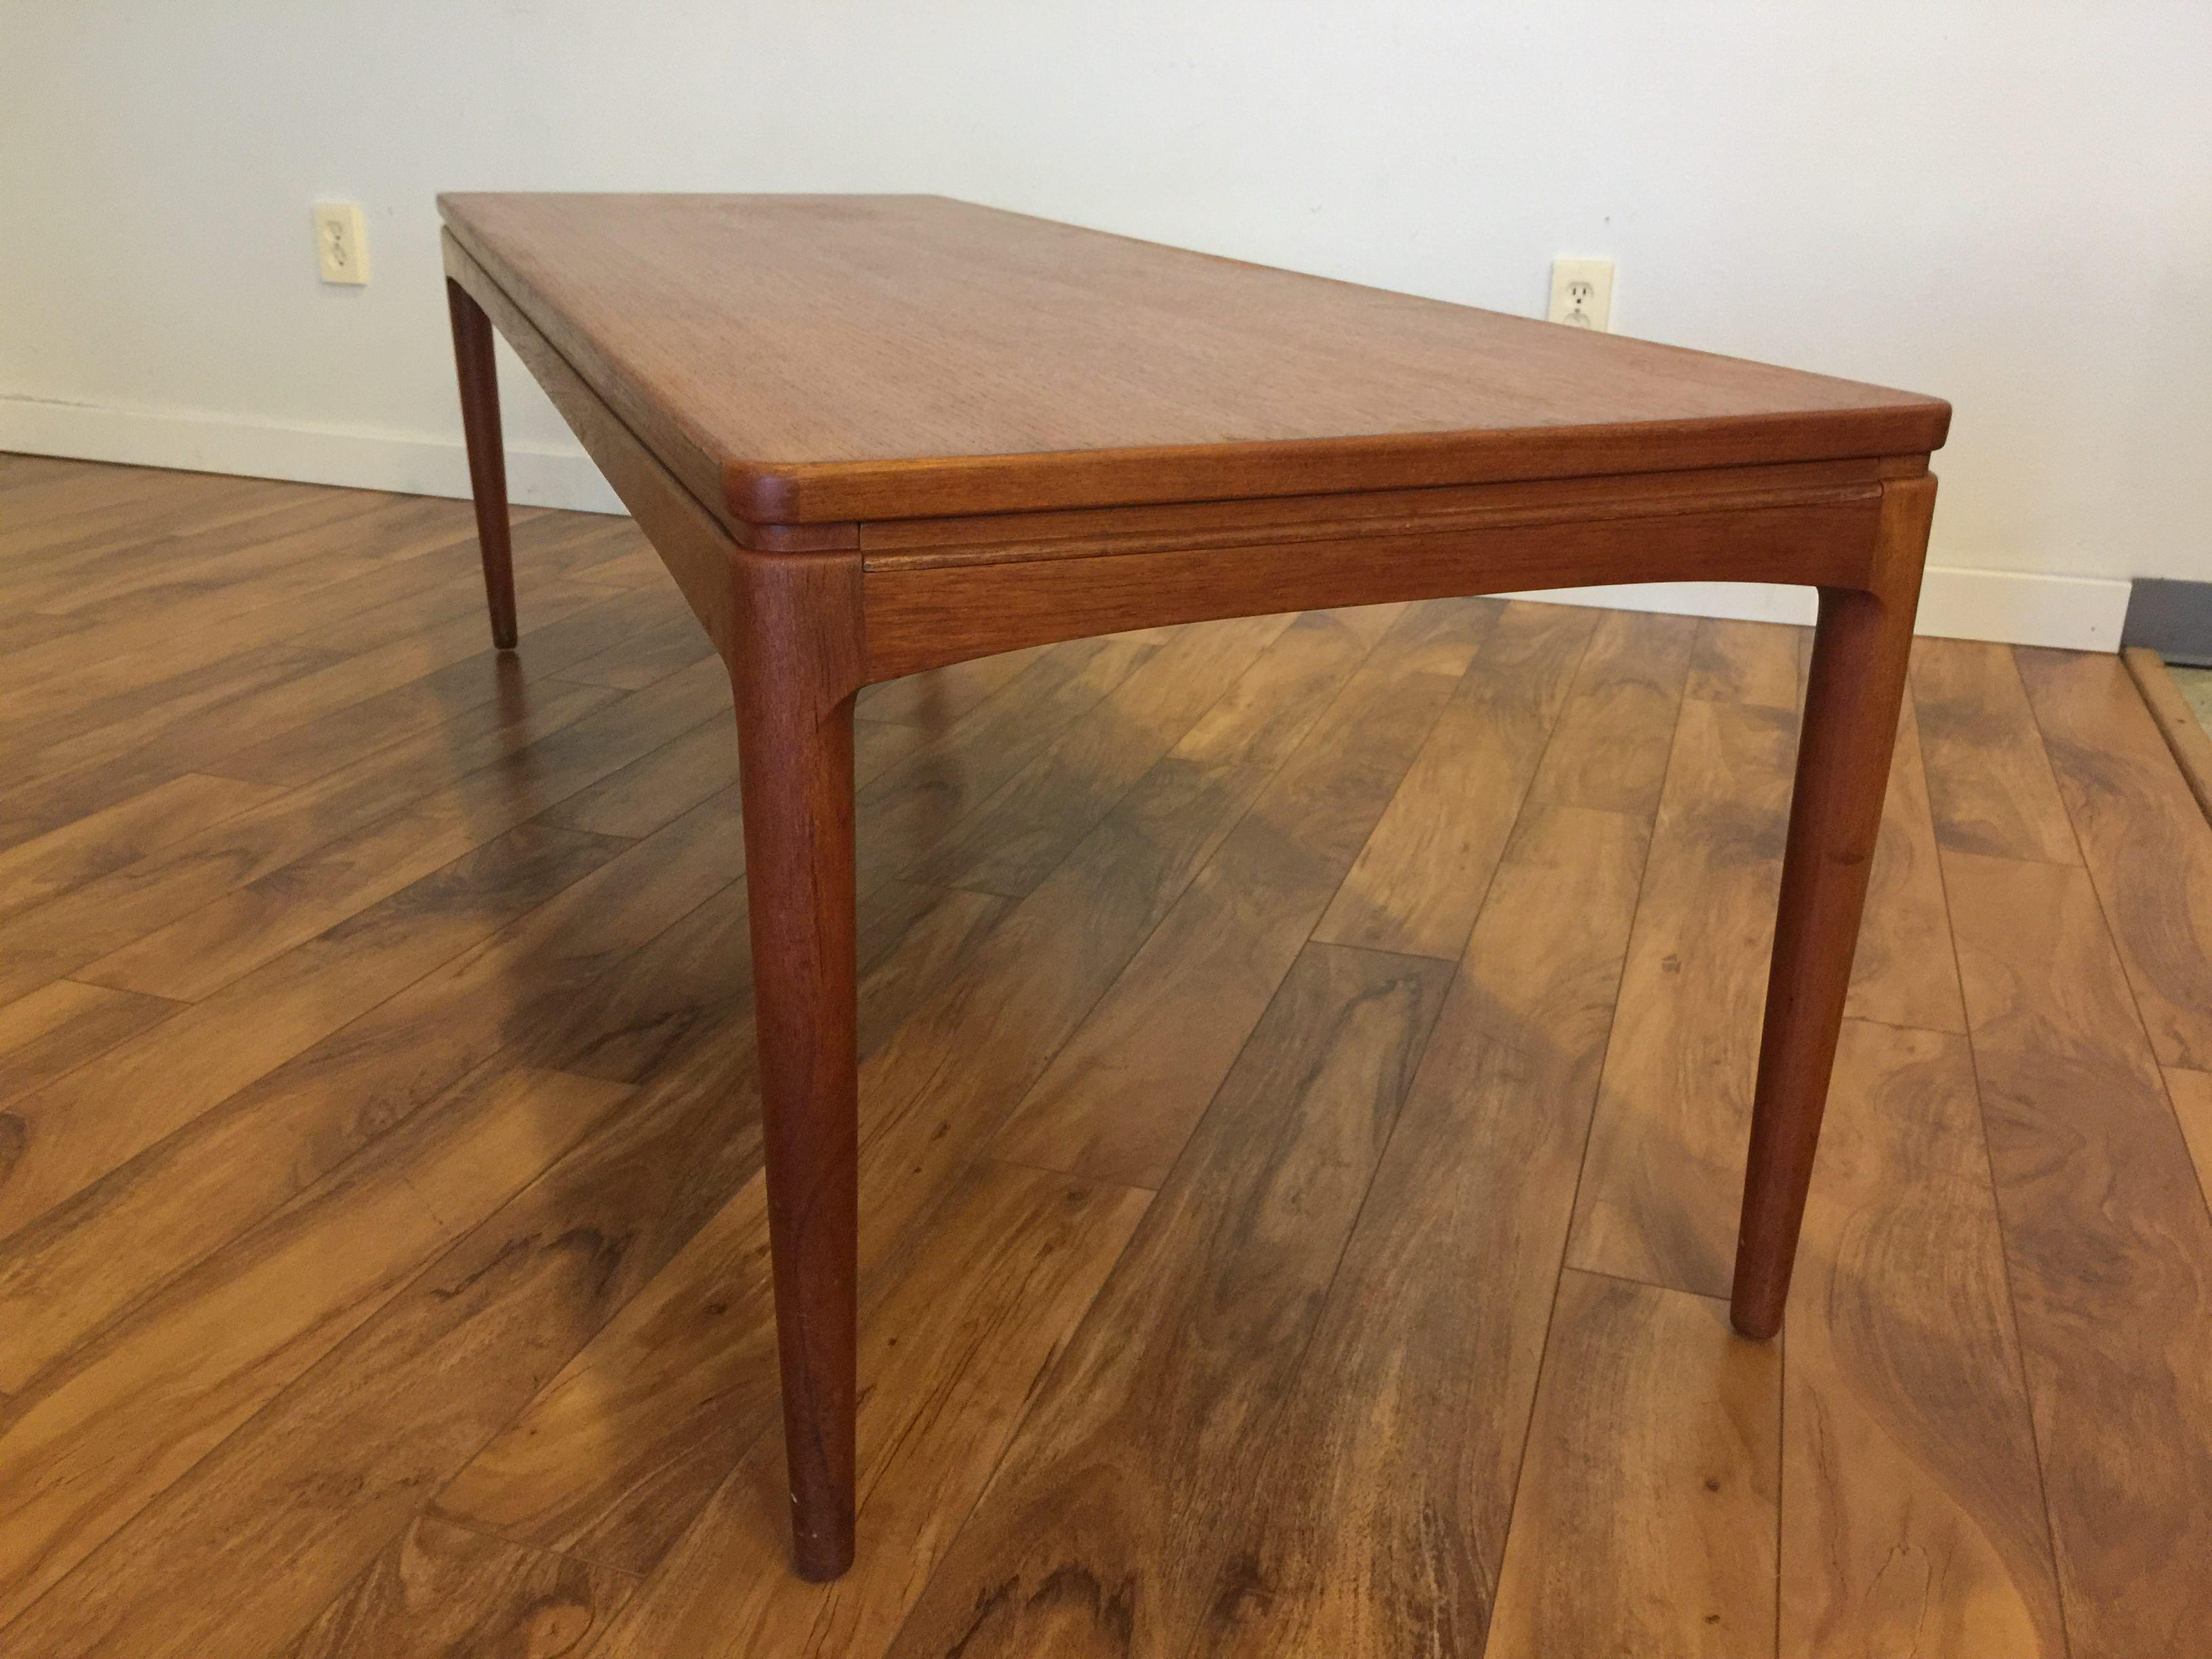 Danish Teak Coffee Table With Slide Out Shelf   Image 7 Of 11